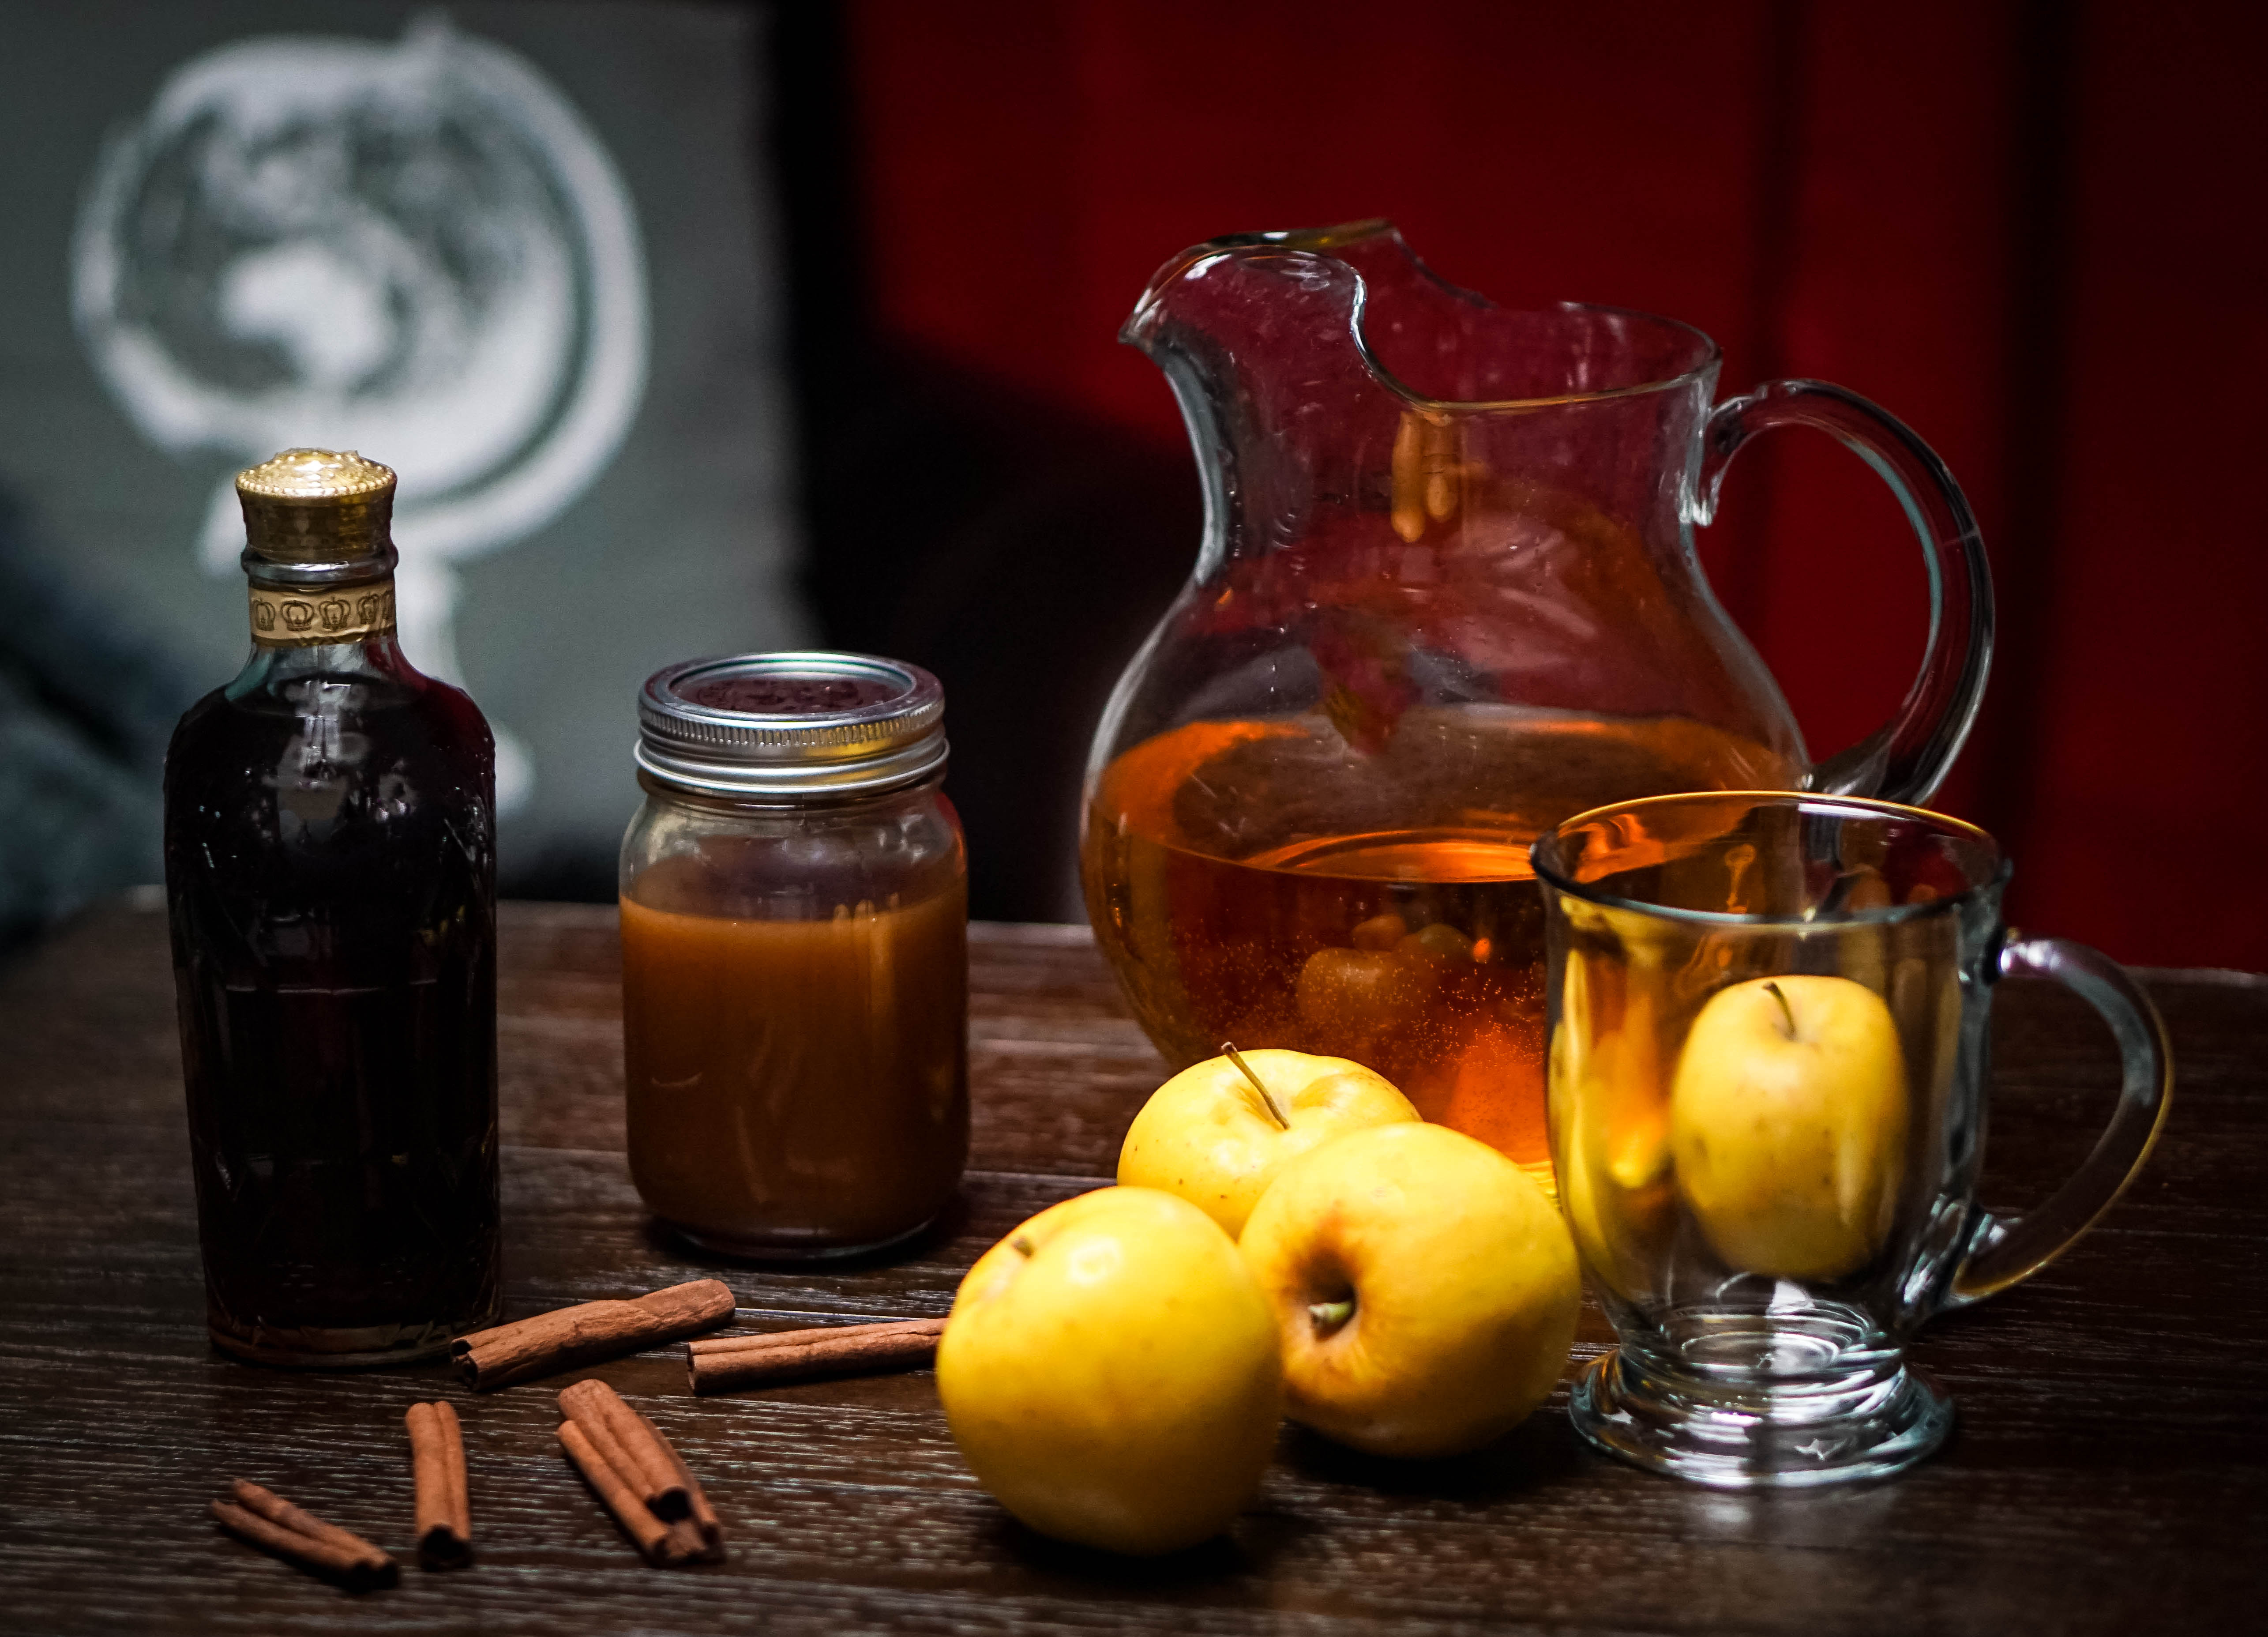 There's nothing like a steamy, Caramel Apple Whiskey Toddy to warm your bones during the cold winter months. Wrap your hands around the mug and enjoy!~By Wet Whistle Drinks by Darla Bentley